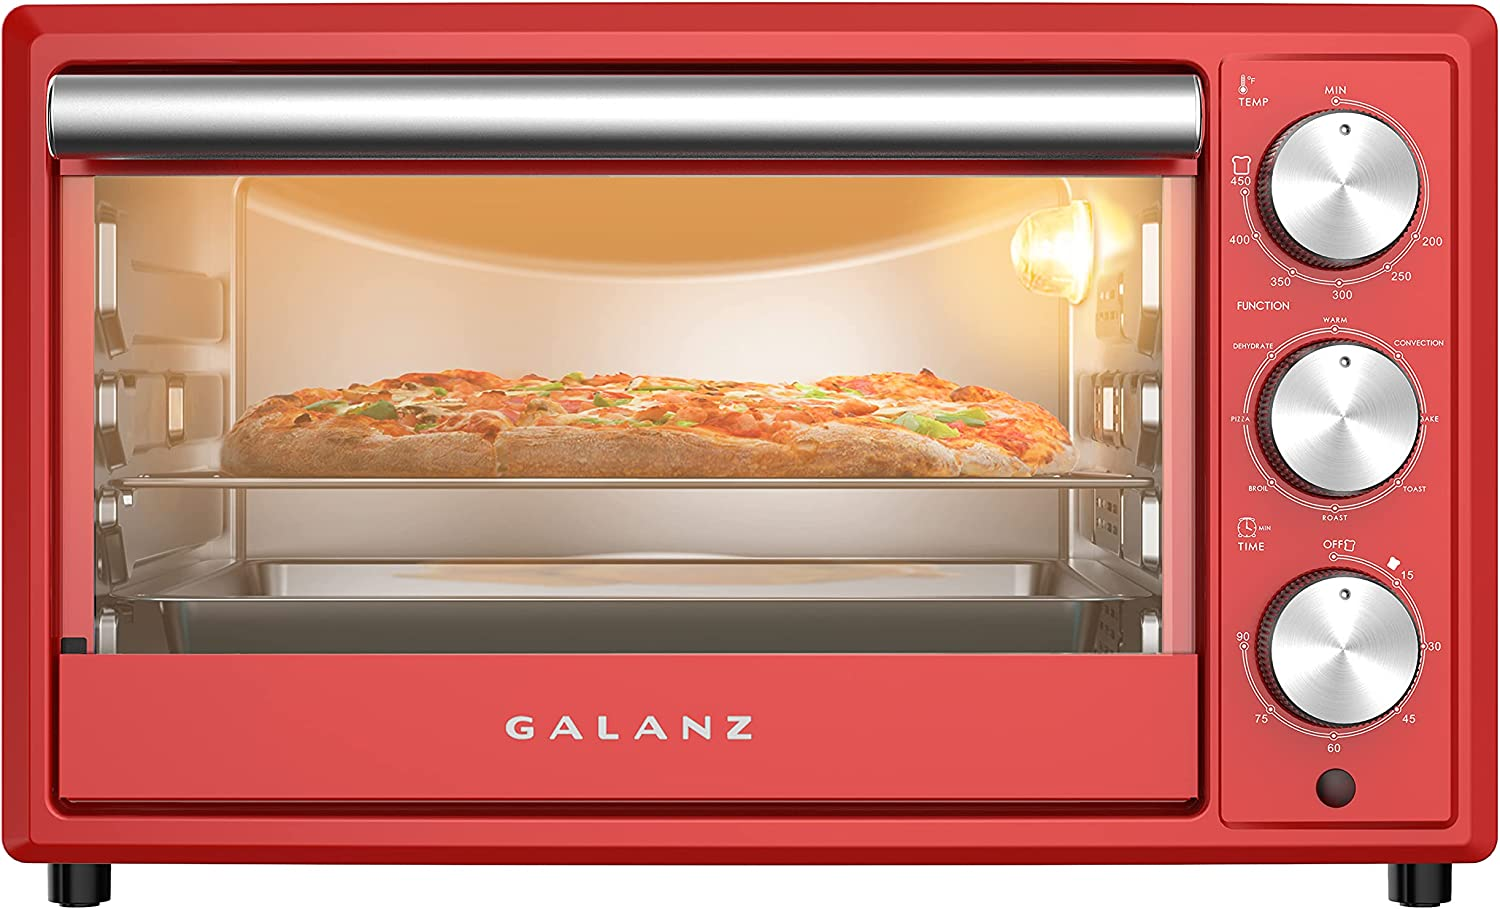 Galanz GRH1209RDRM151 Detroit Mall Large 6-Slice Oven Convection True Popular products Toaster